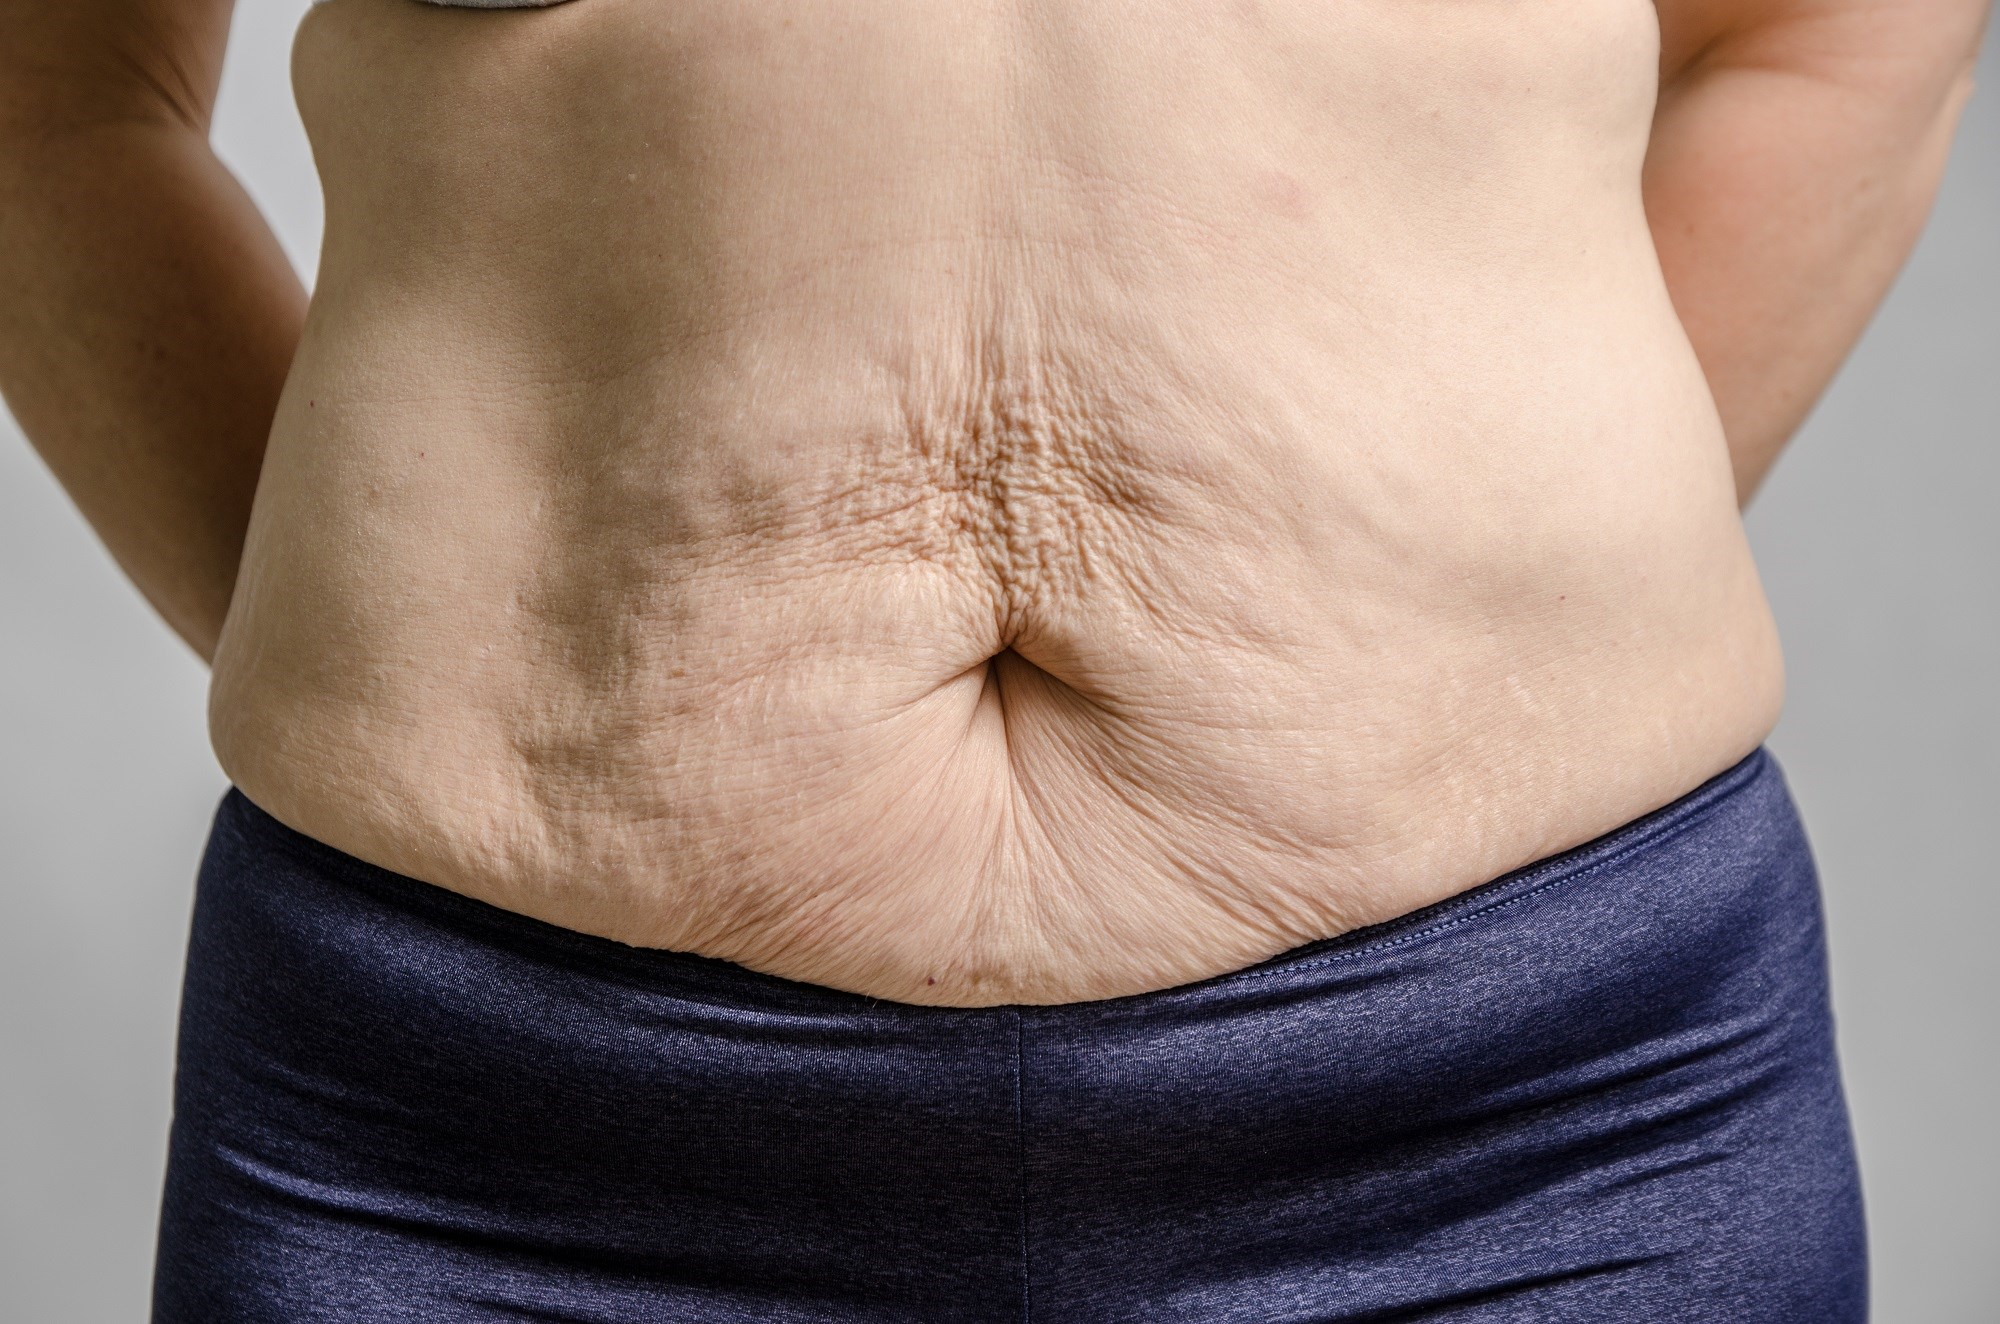 Obesity Subtype May Determine Outcomes After Bariatric Surgery